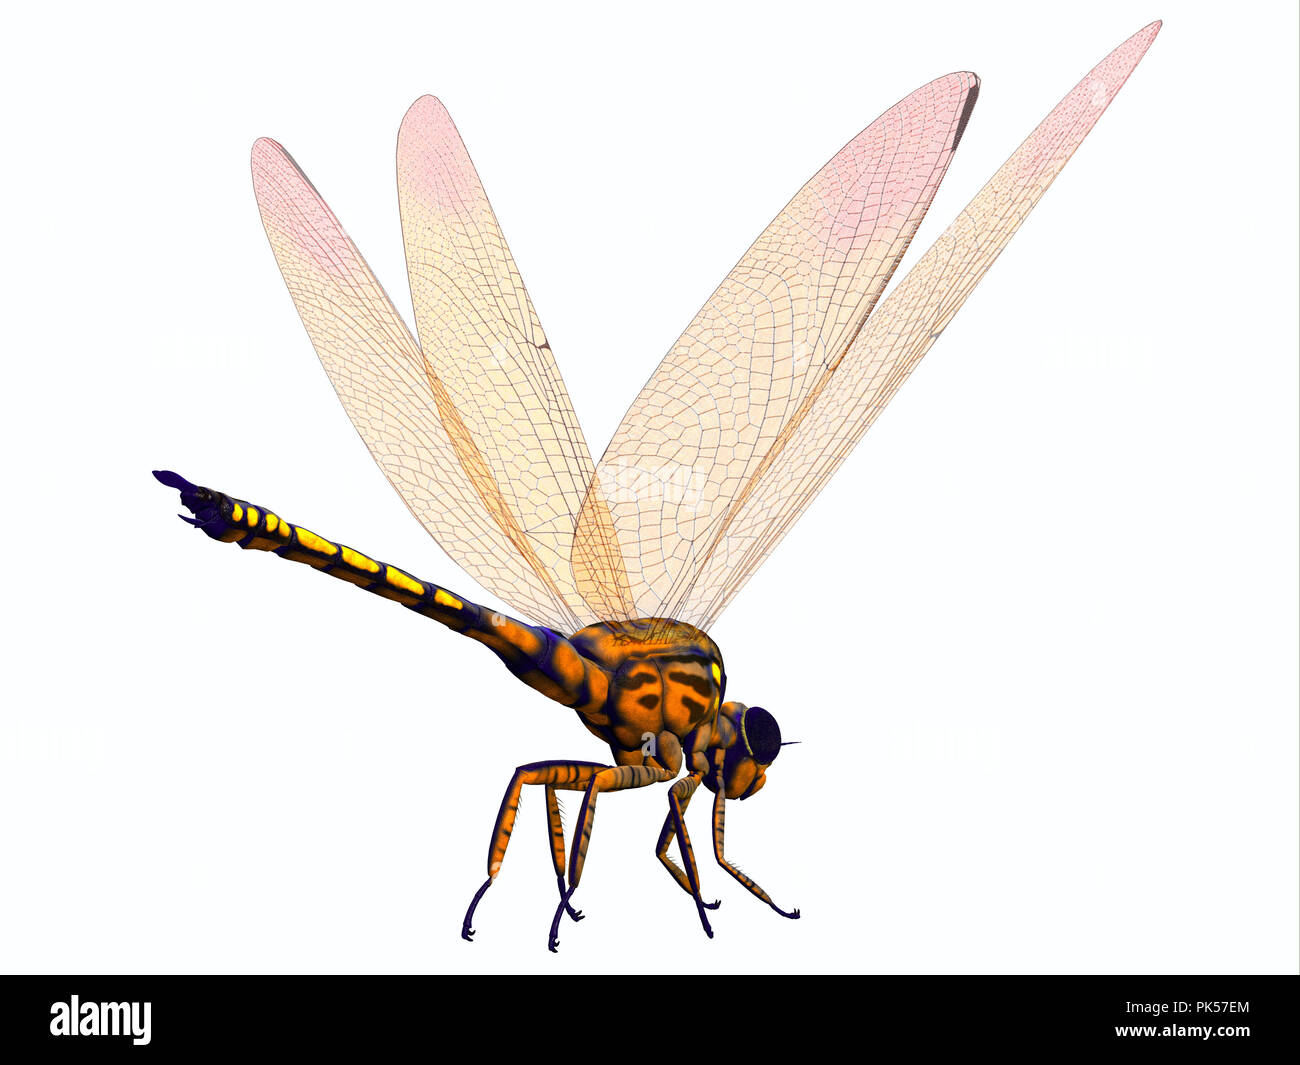 Meganeura Dragonfly - Meganeura was extremely large carnivorous dragonfly insect that lived in France and England during the Carboniferous Period. - Stock Image